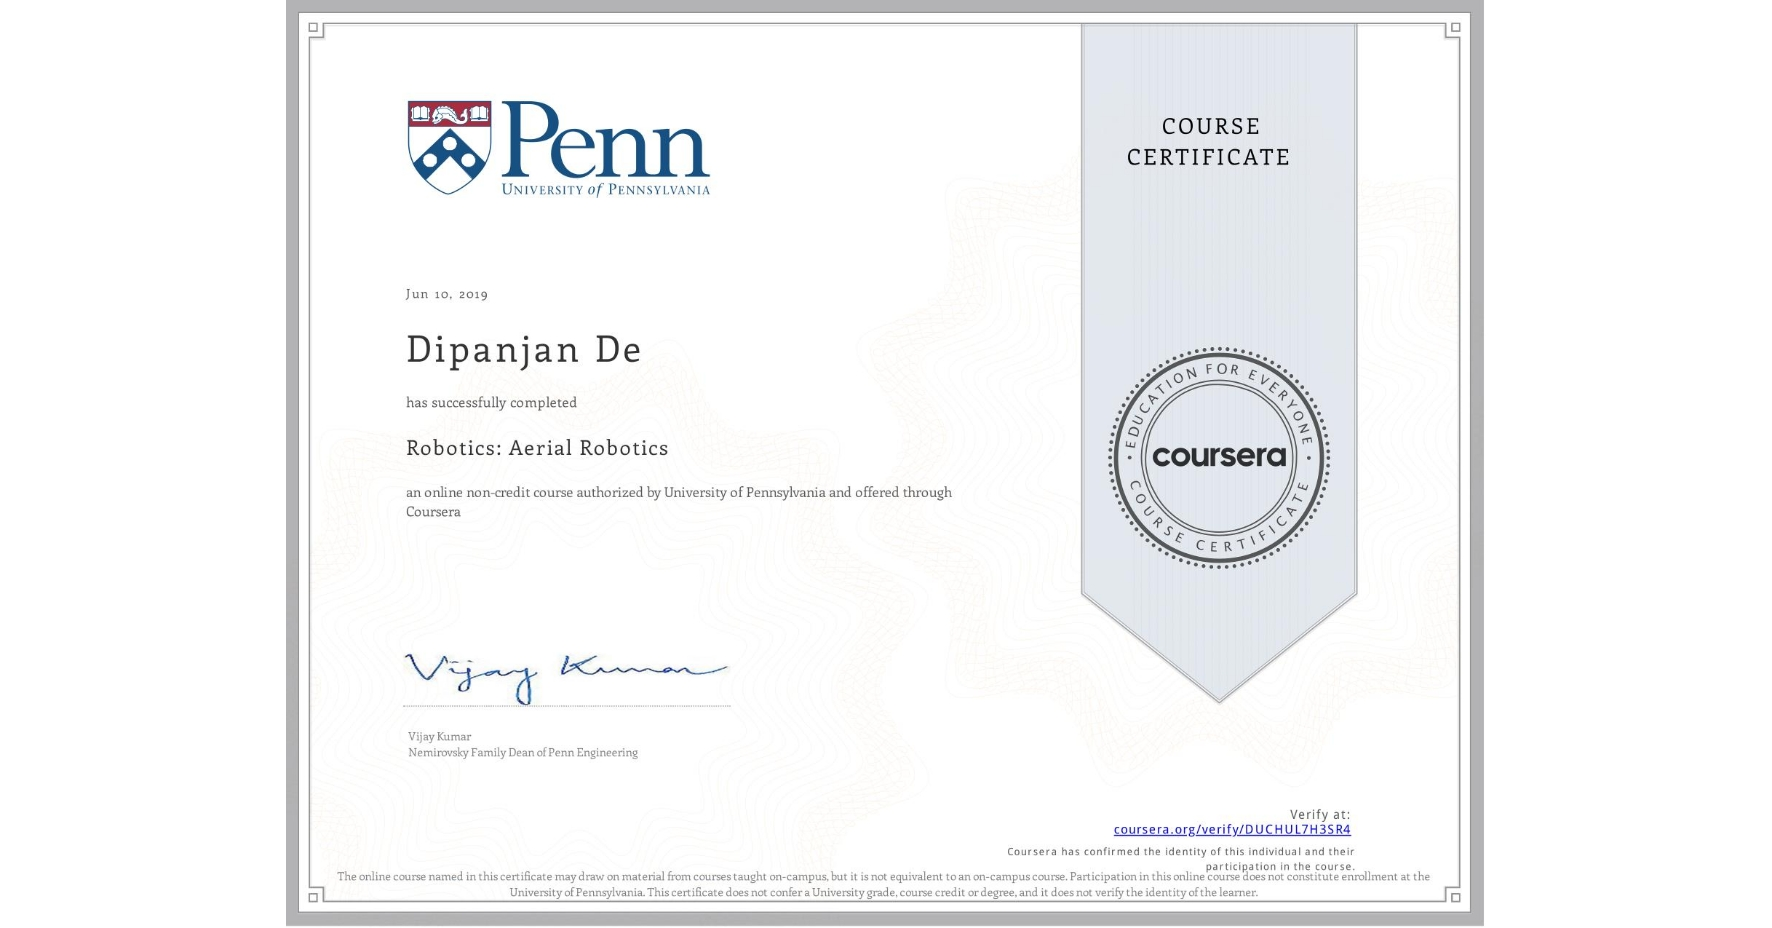 View certificate for Dipanjan De, Robotics: Aerial Robotics, an online non-credit course authorized by University of Pennsylvania and offered through Coursera